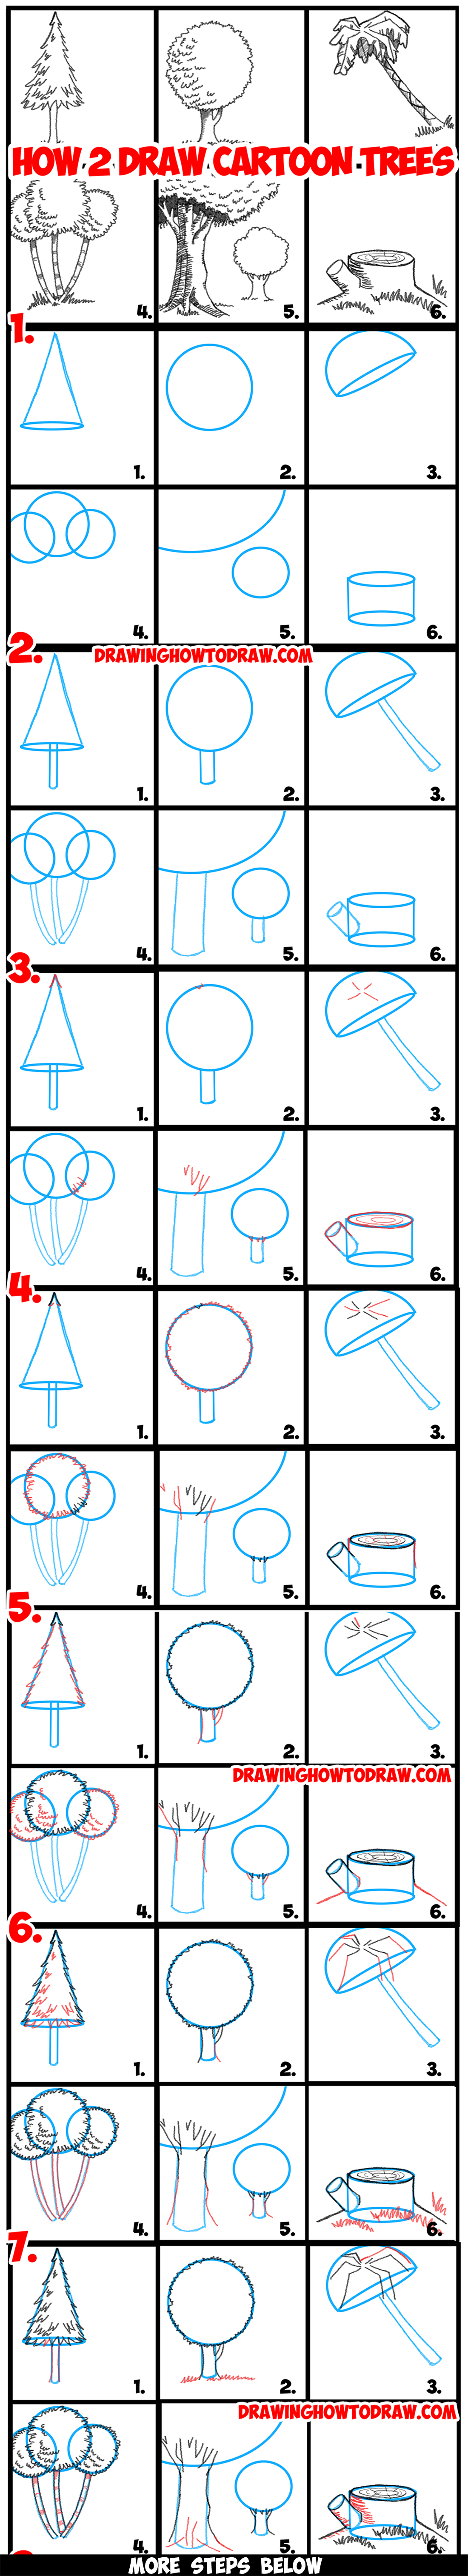 guide to drawing cartoon trees with basic geometric shapes step